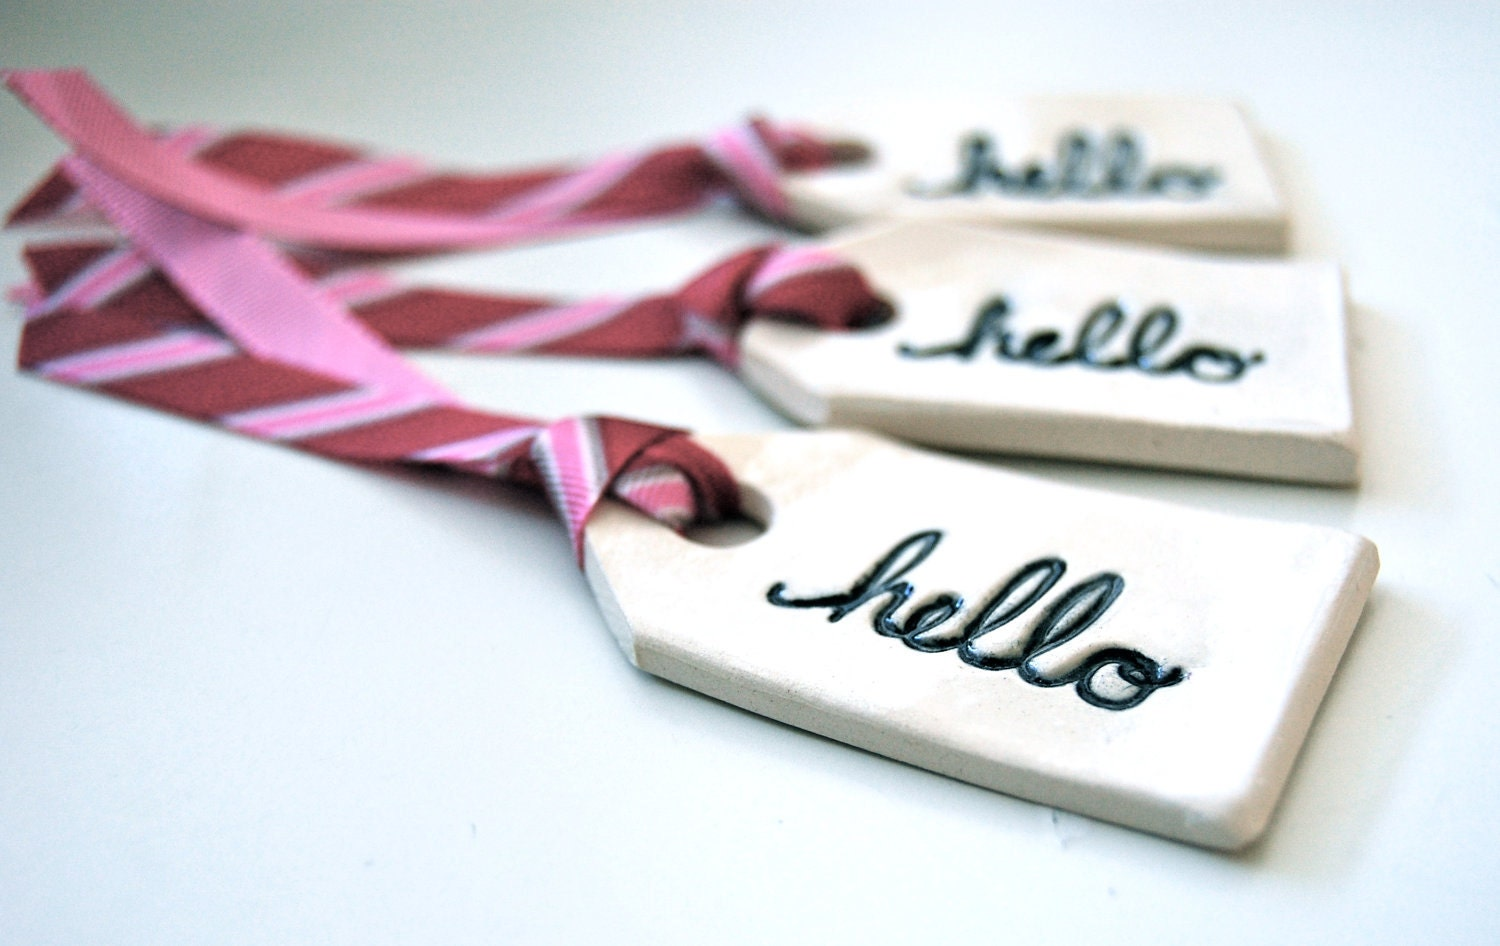 Ceramic hello gift tags